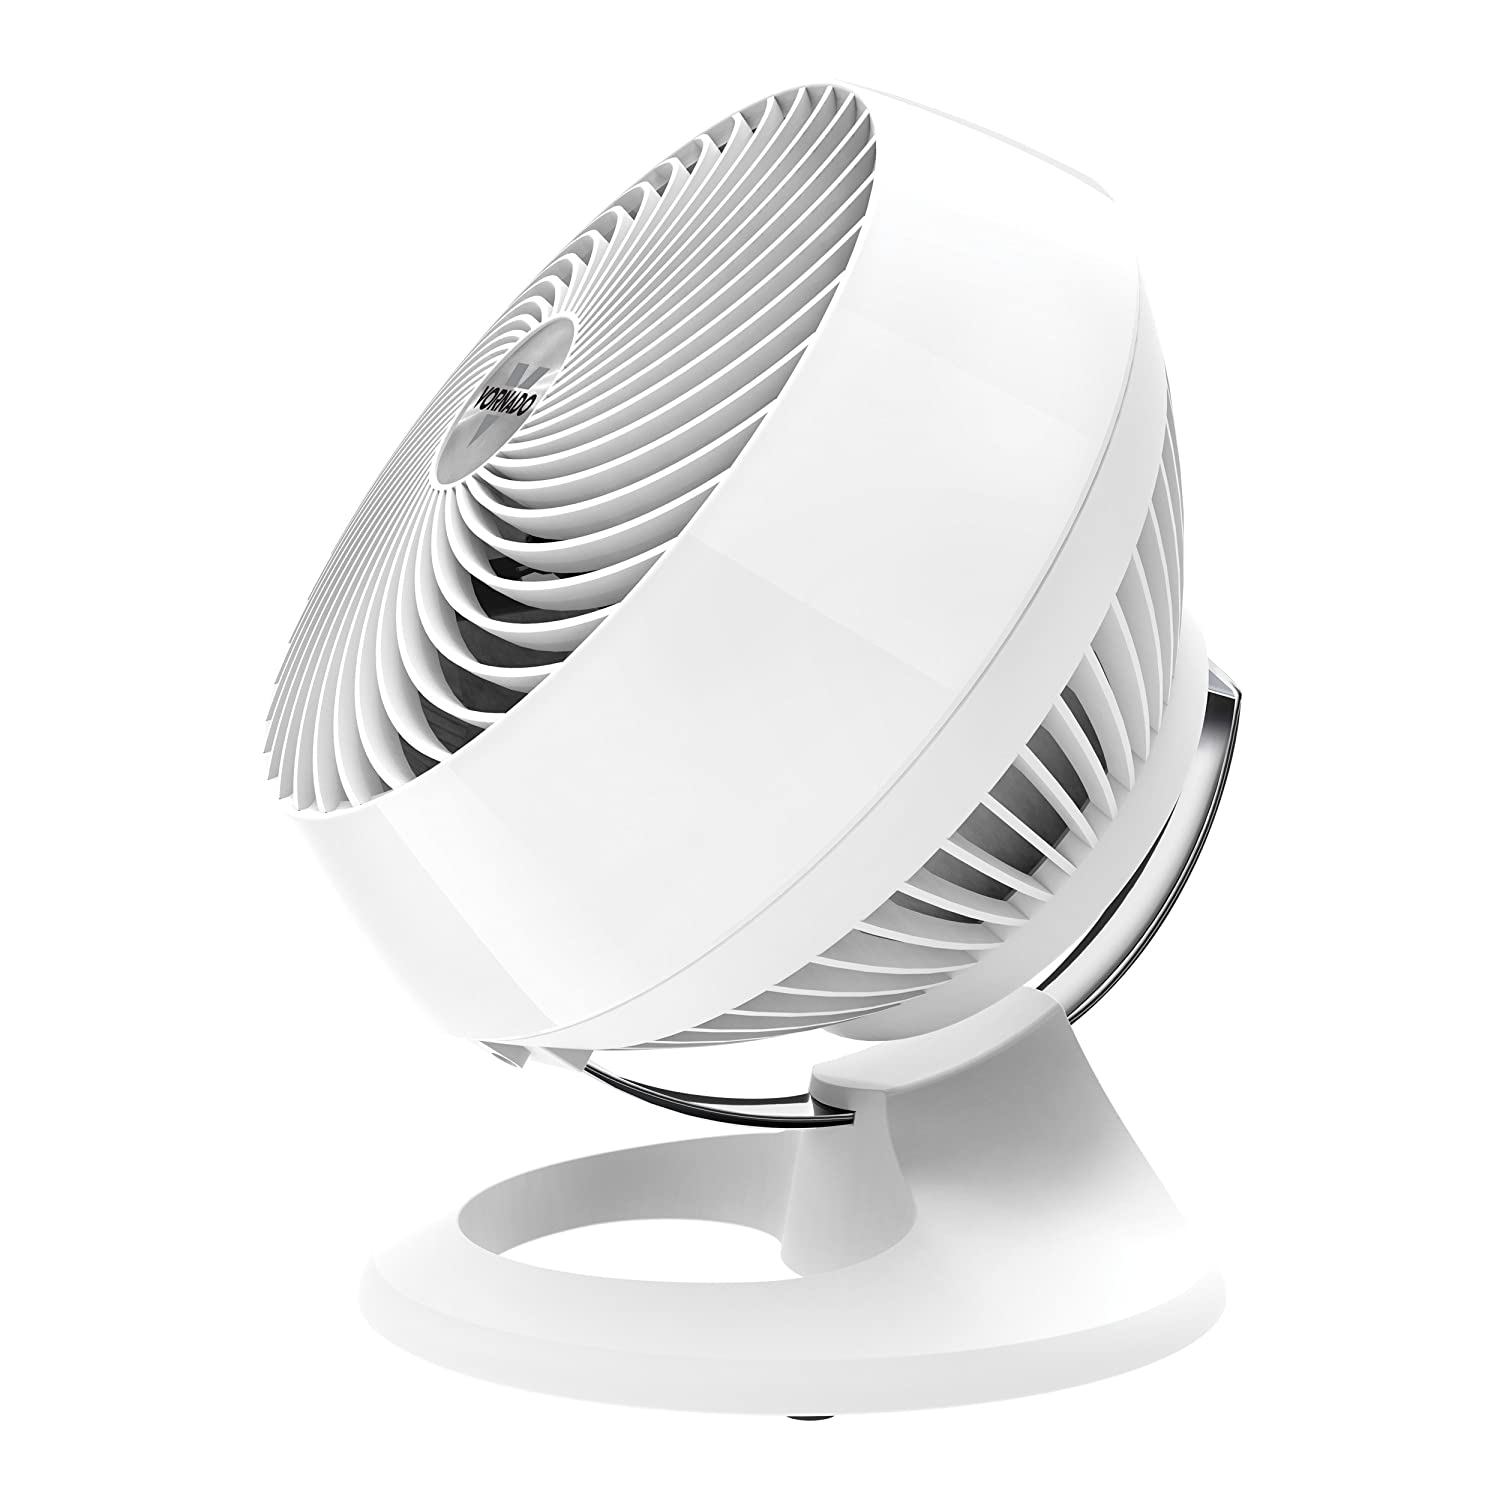 Vornado 660: An effective air circulator for your room